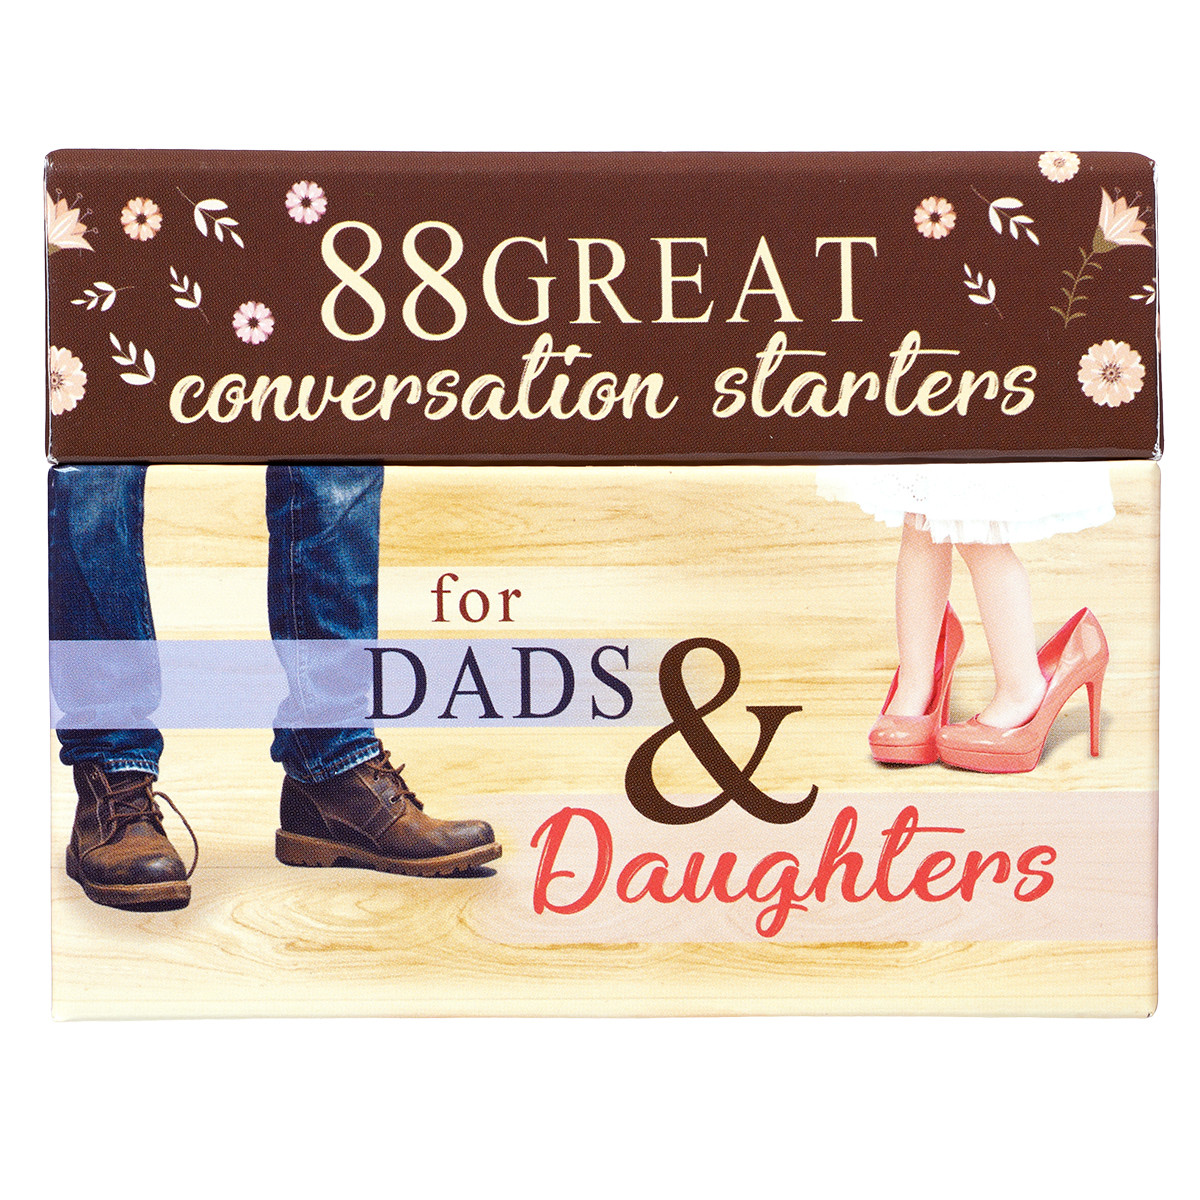 Conversation Starters-Dads & Daughters